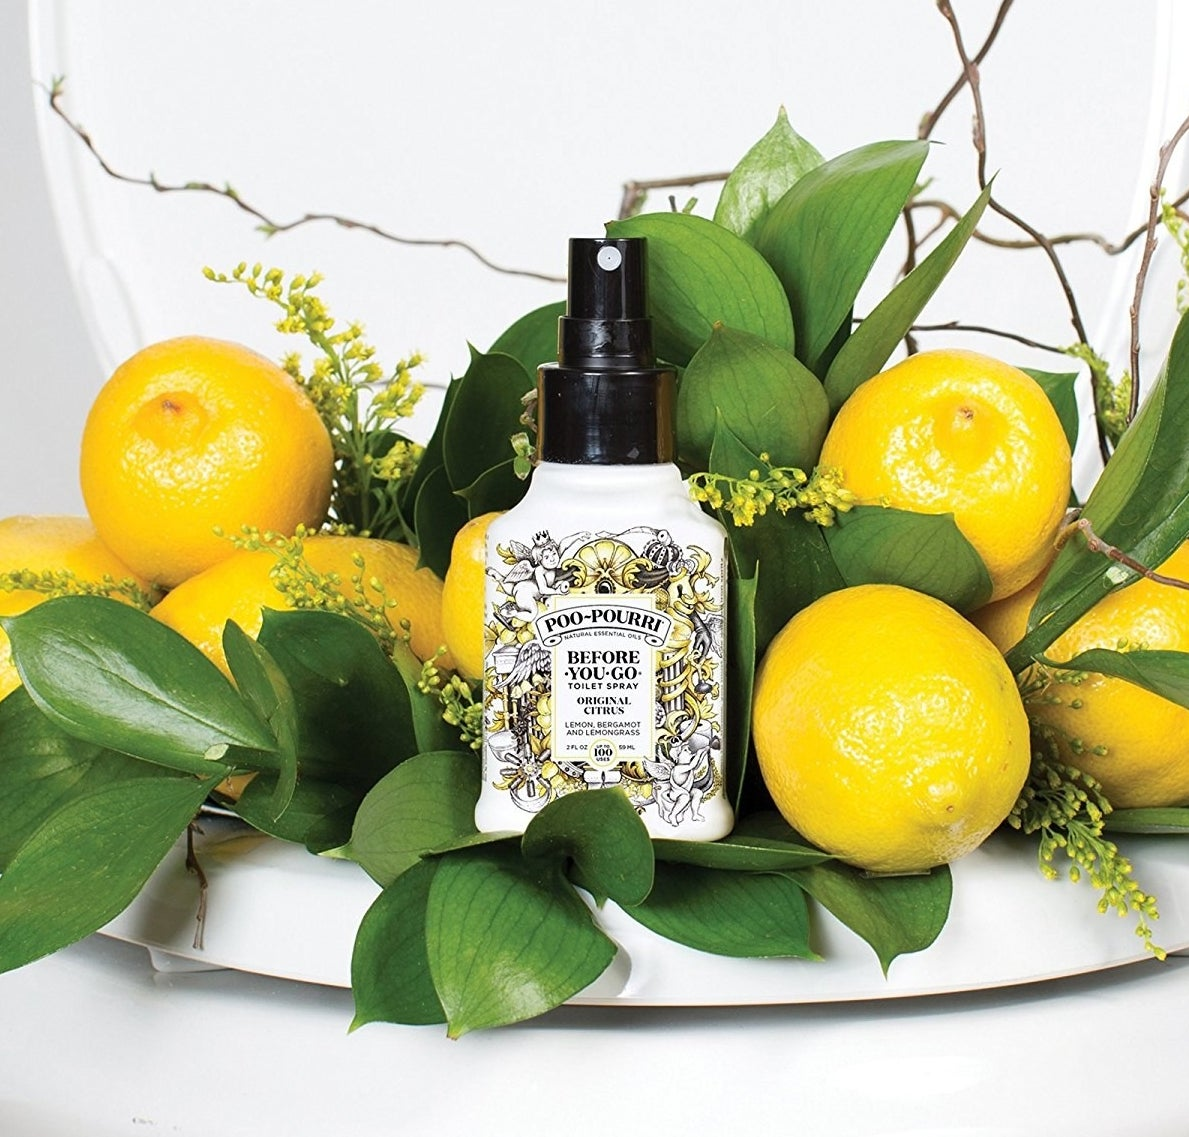 the bottle of poo-pourri displayed next to some lemons